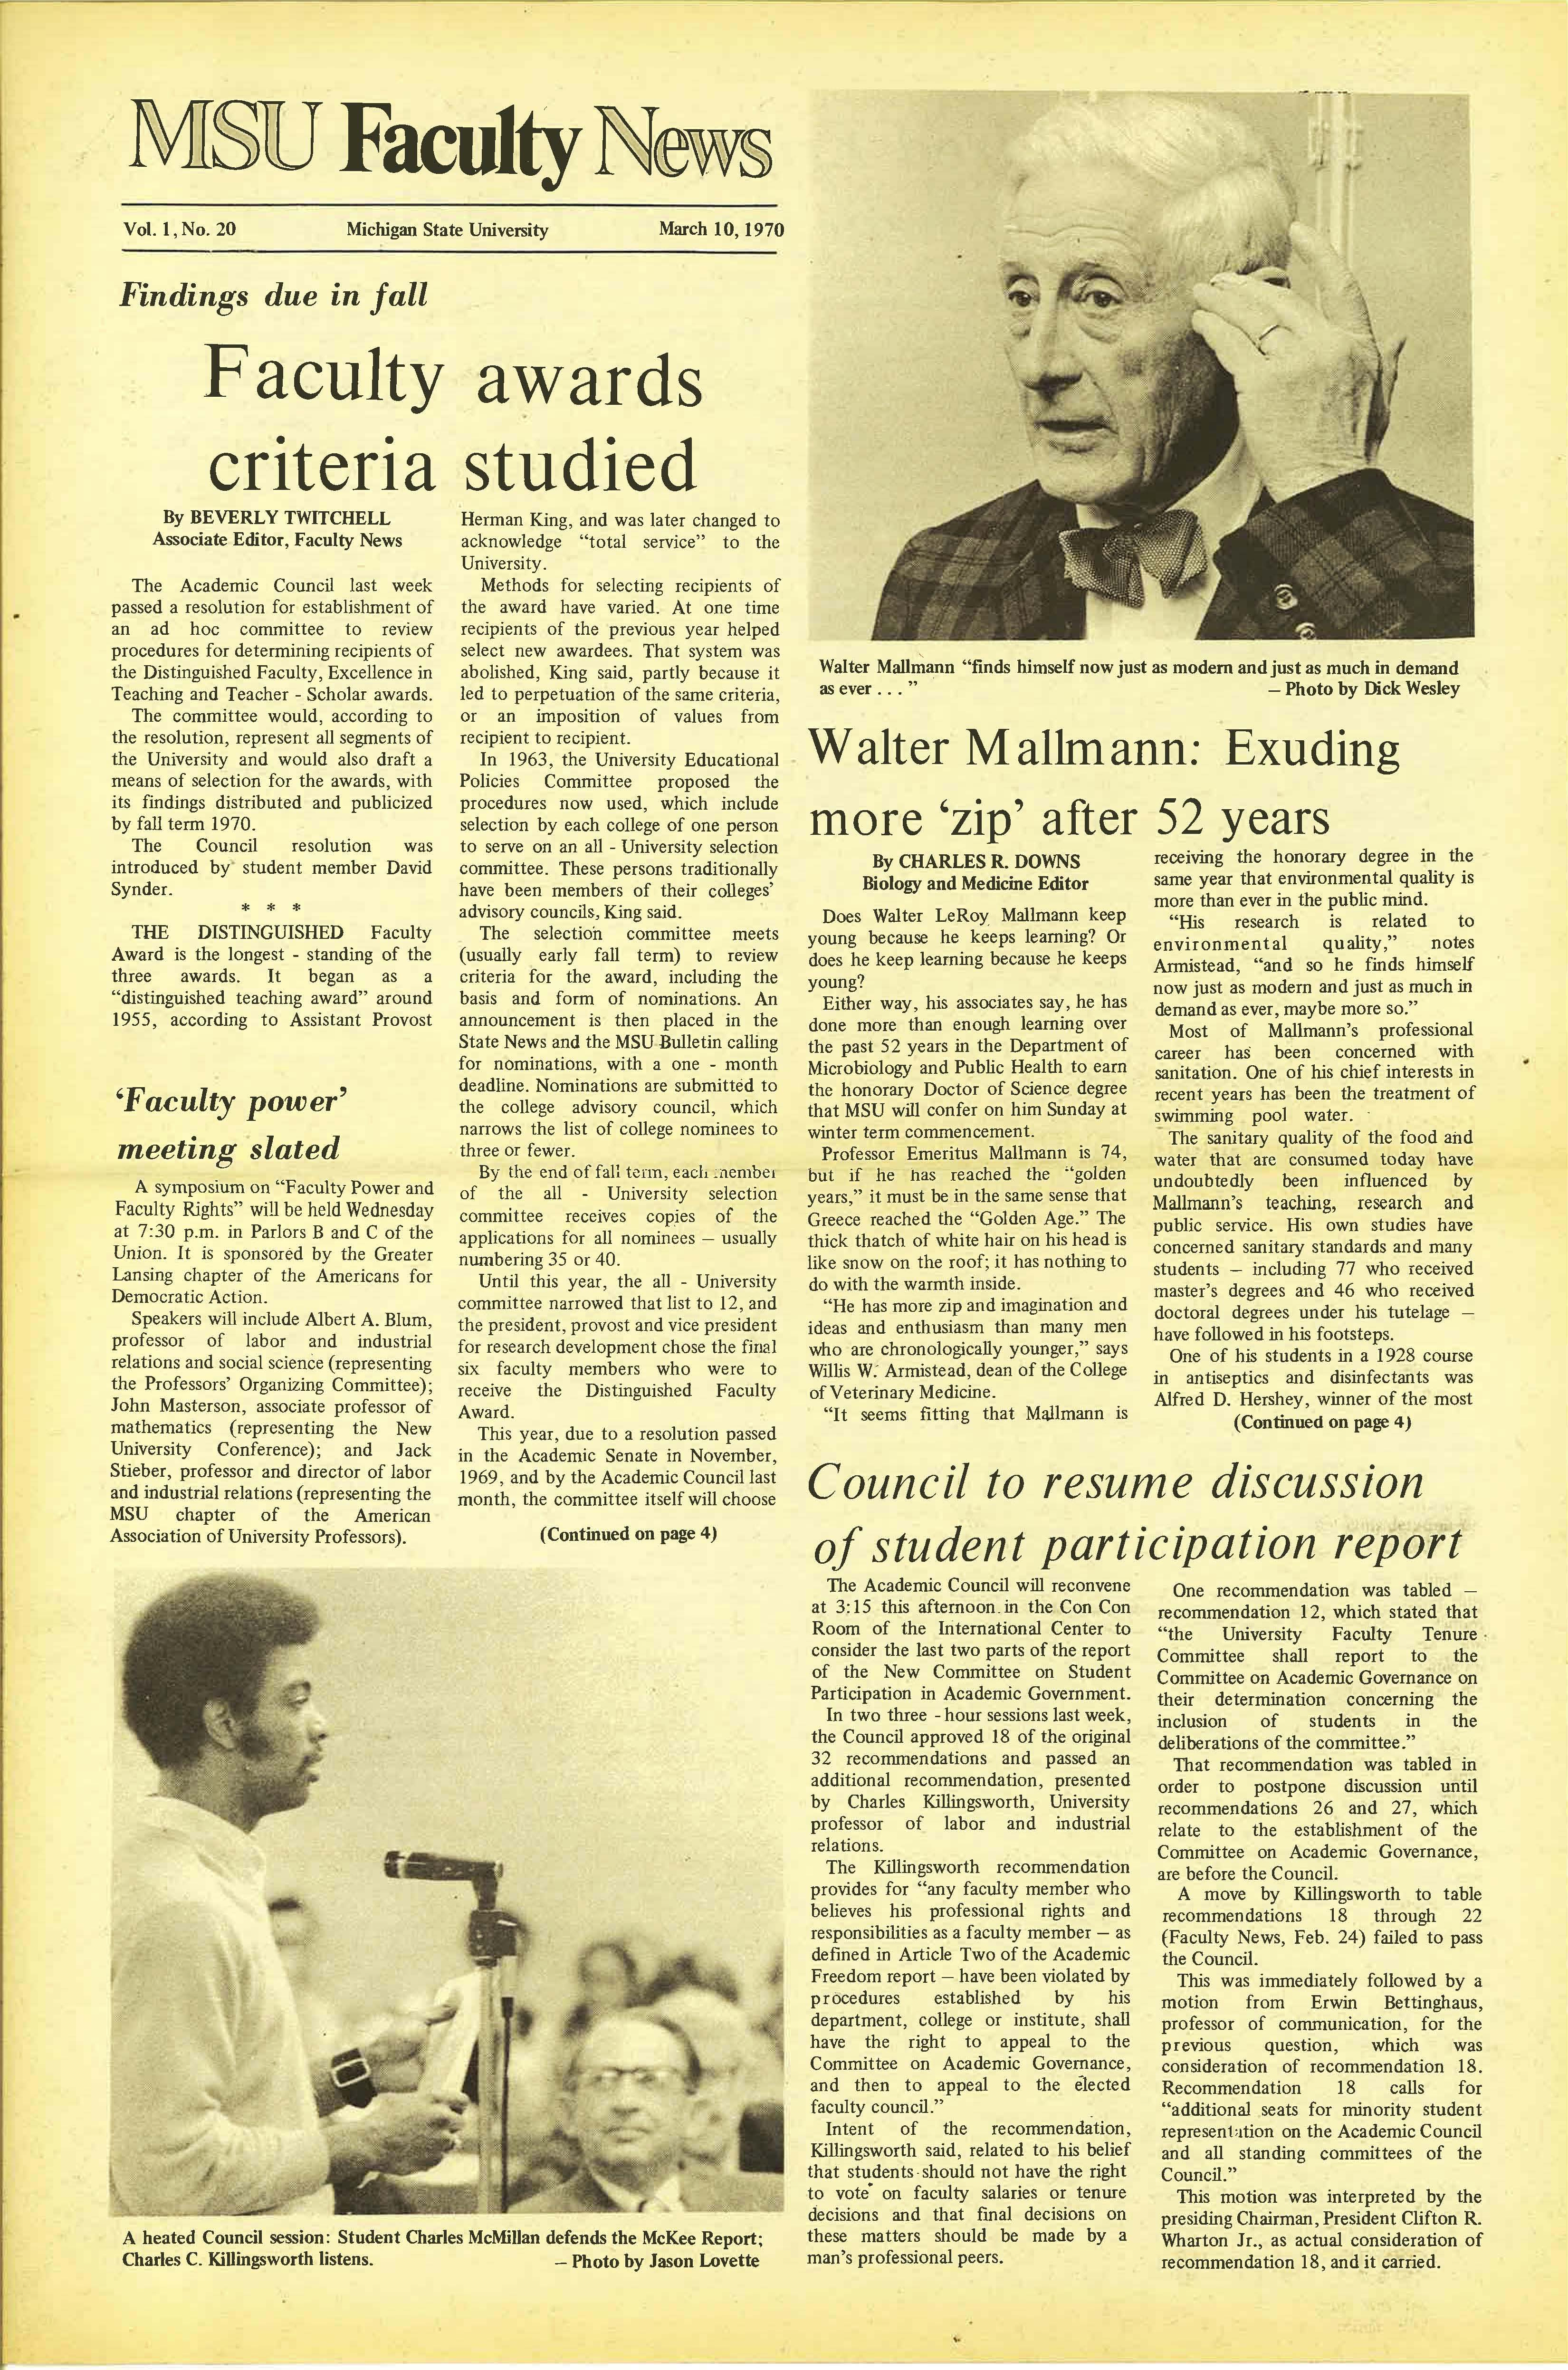 MSU News Bulletin, Vol. 1, No. 12, January 13, 1970